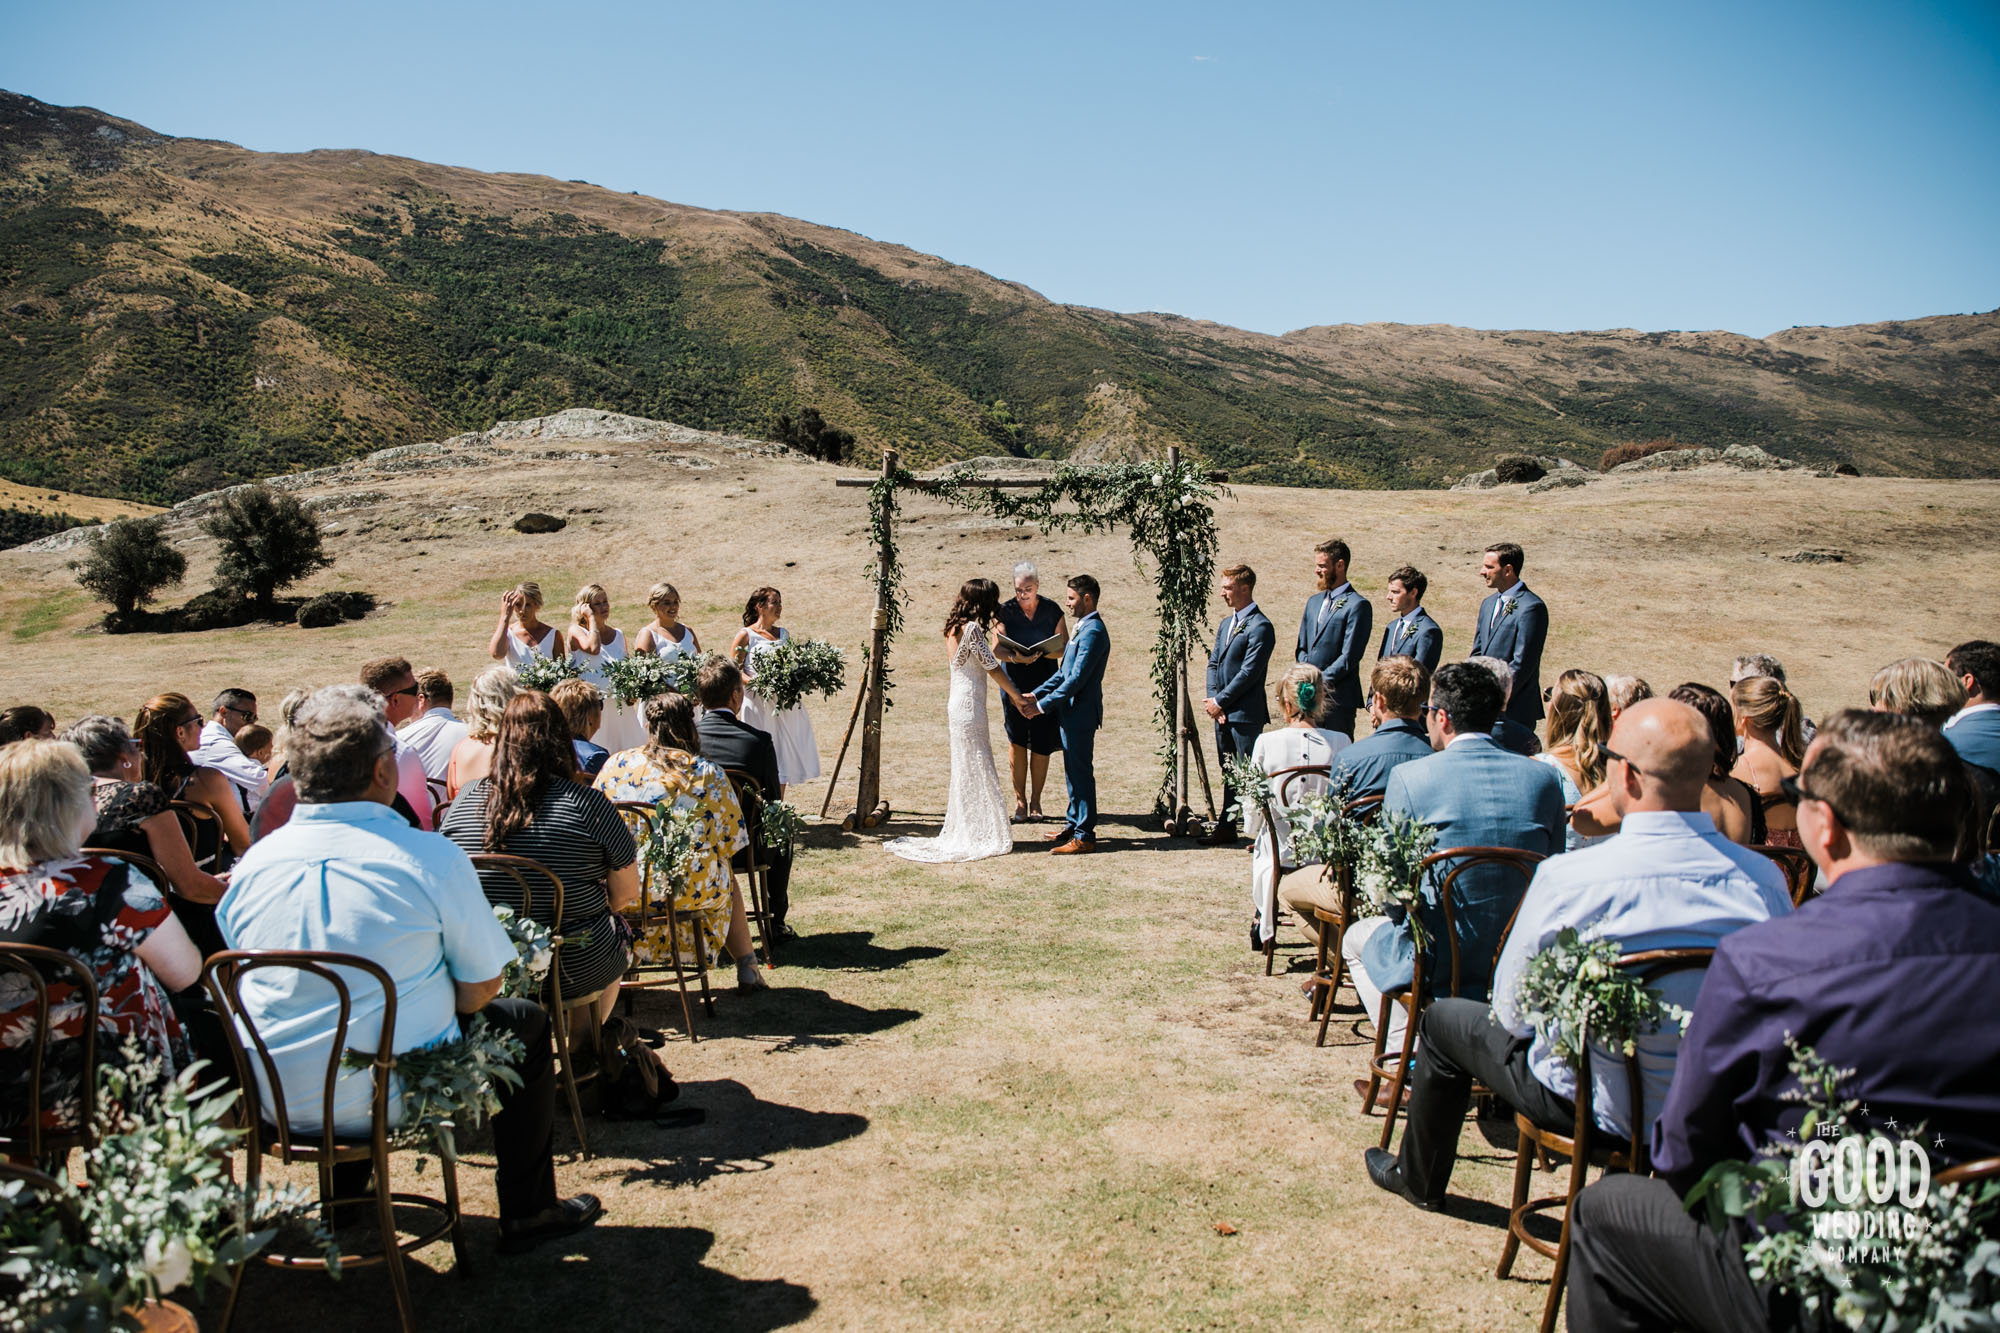 The-Good-Wedding-Company-LaurenLukas-Peregrine-Winery-Wanaka-Photographer-161.jpg